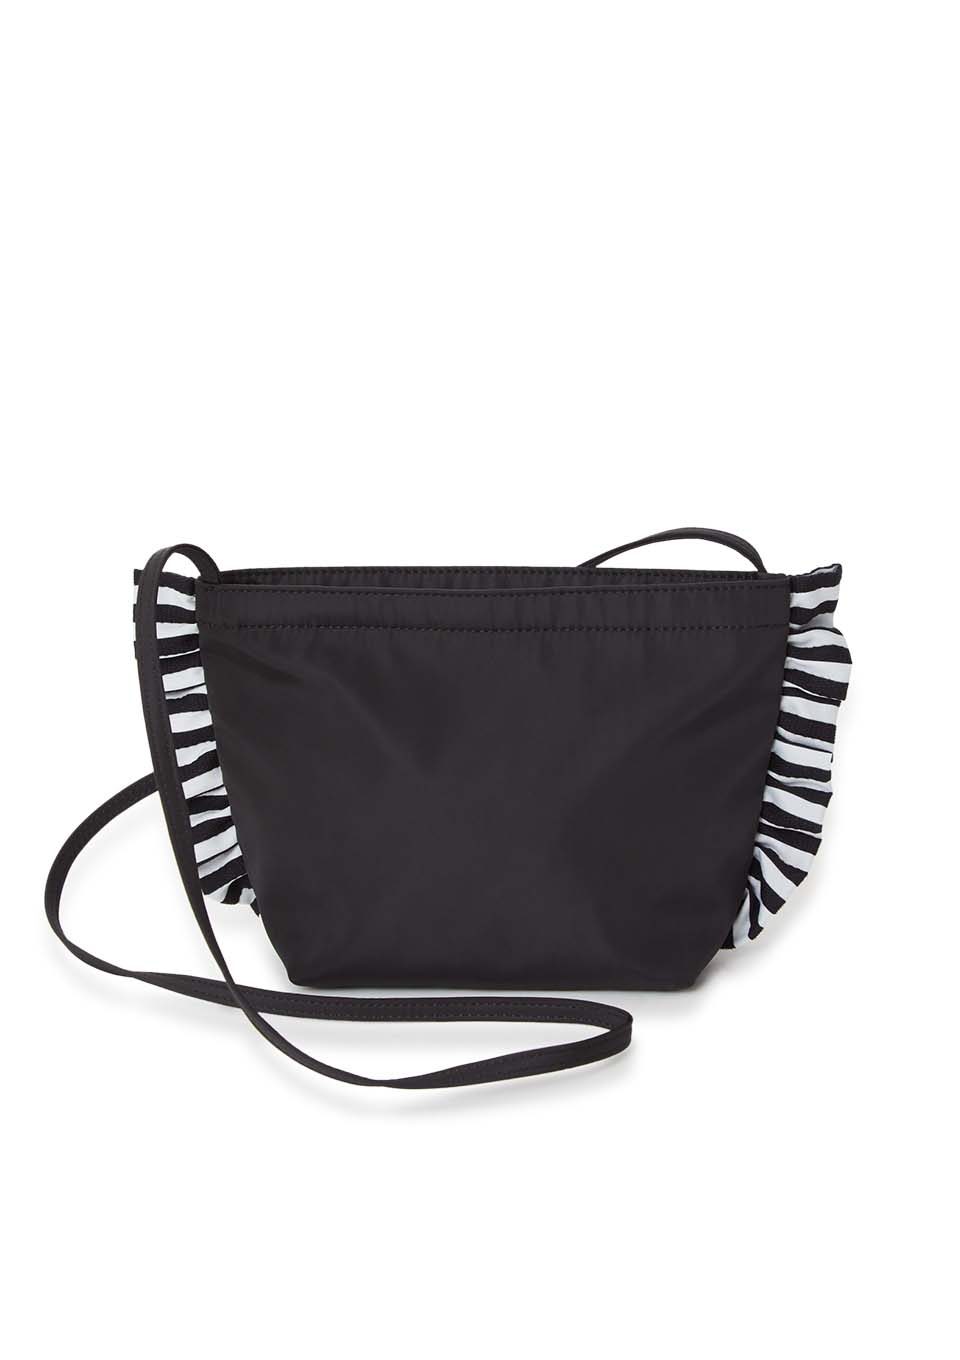 CITY POLLY POCHETTE